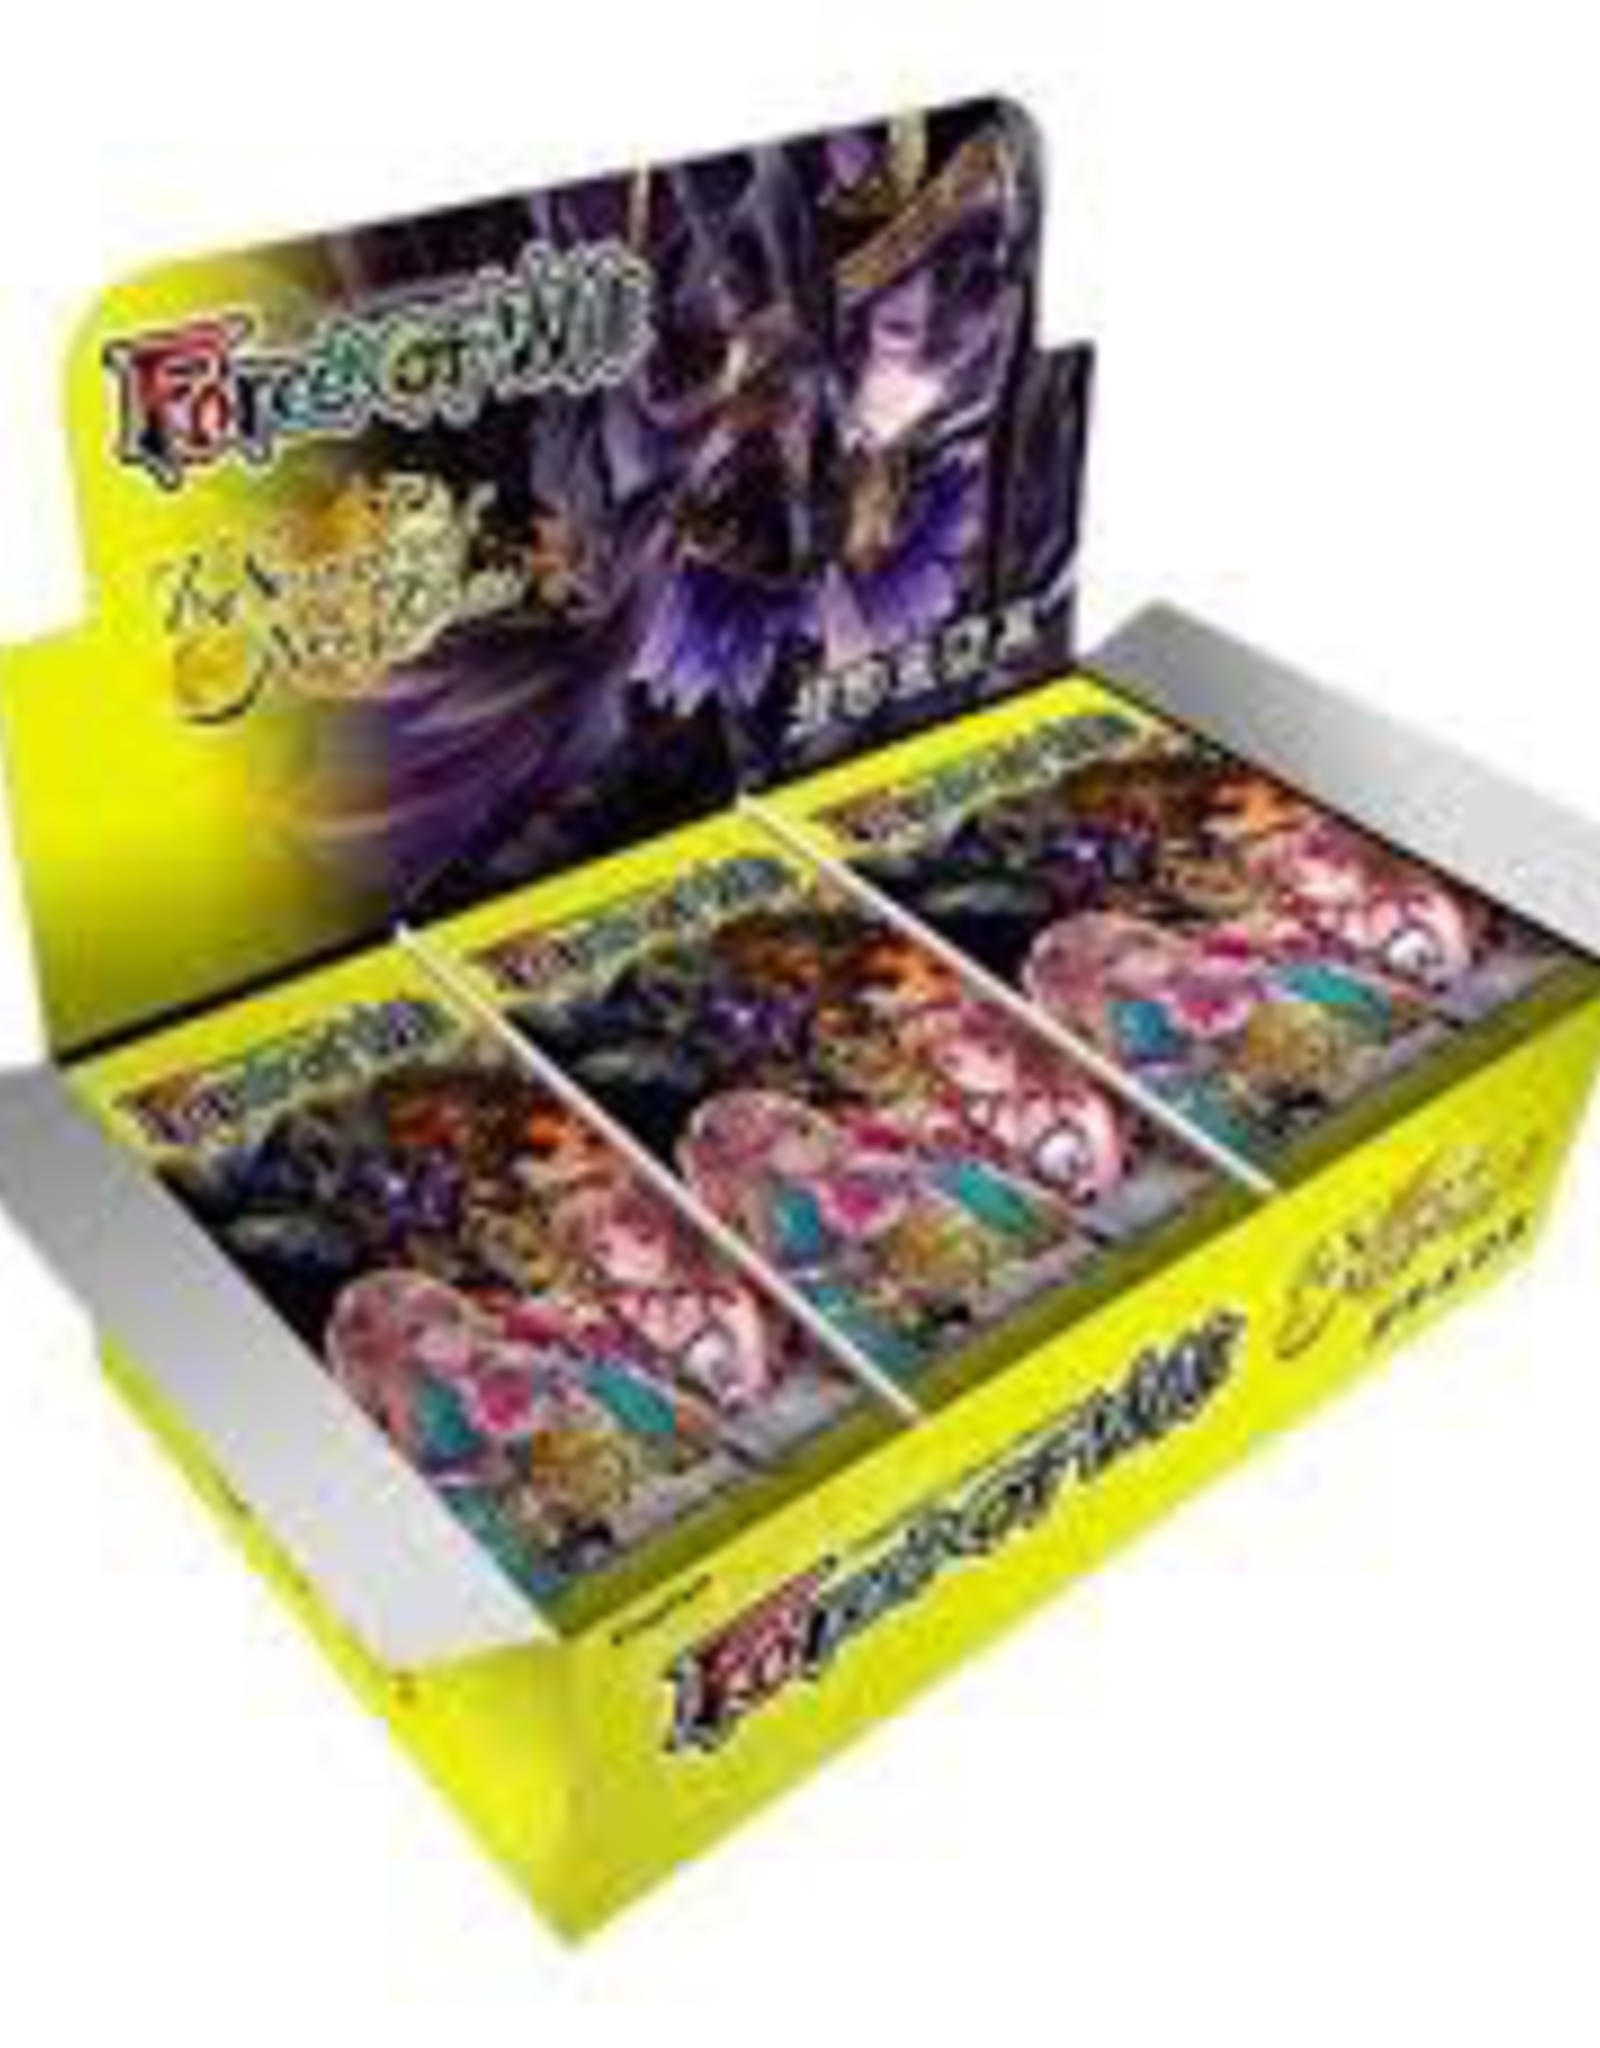 FoW - New Valhalla Cycle FoW - The Strangers of New Valhalla - Booster Display (36 Packs) - EN